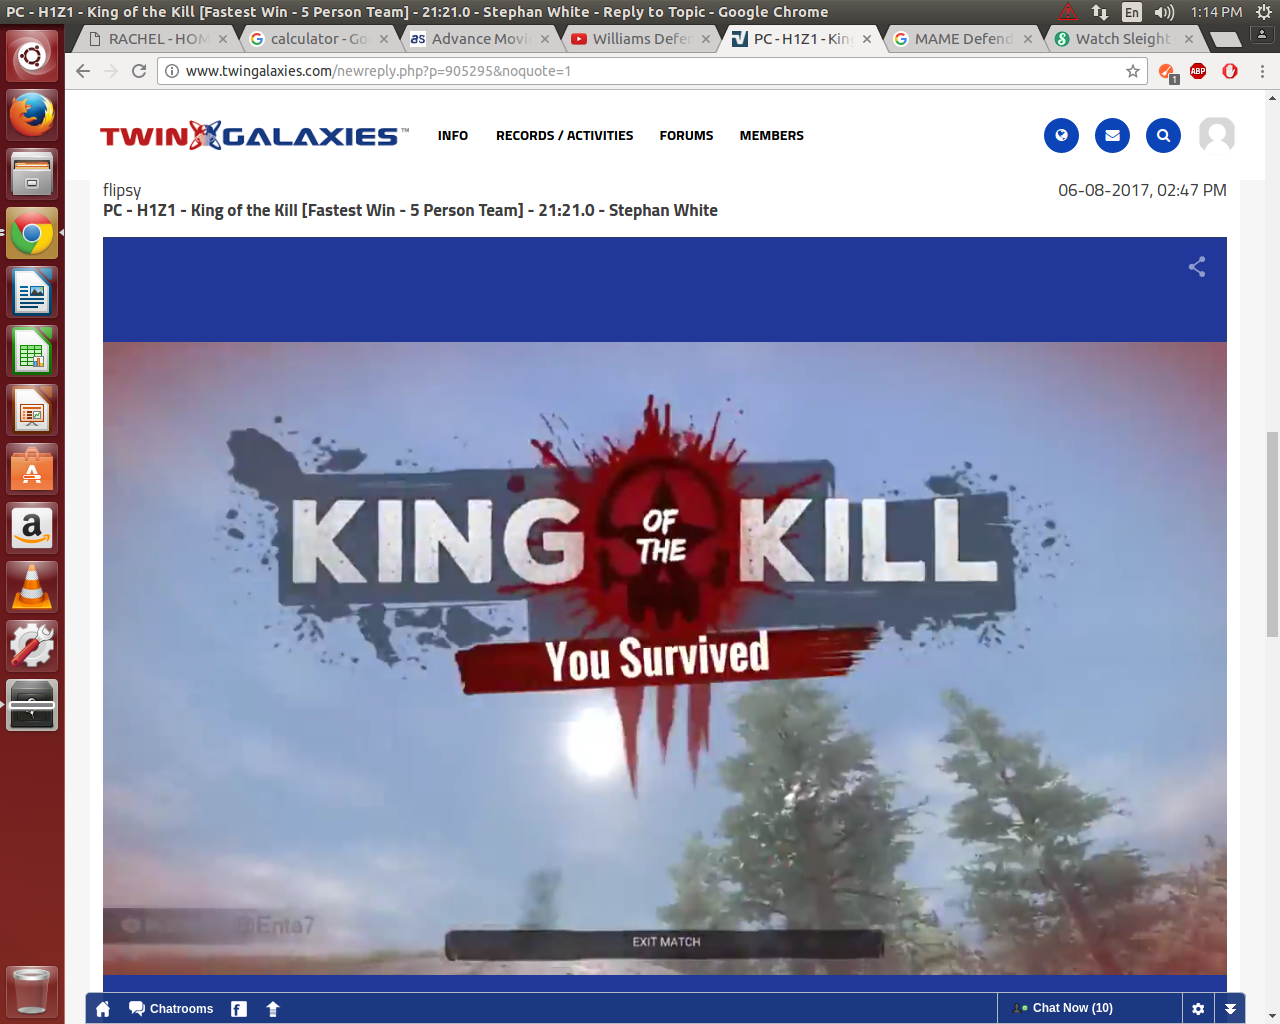 PC - H1Z1 - King of the Kill [Fastest Win - 5 Person Team] - 21:21 0